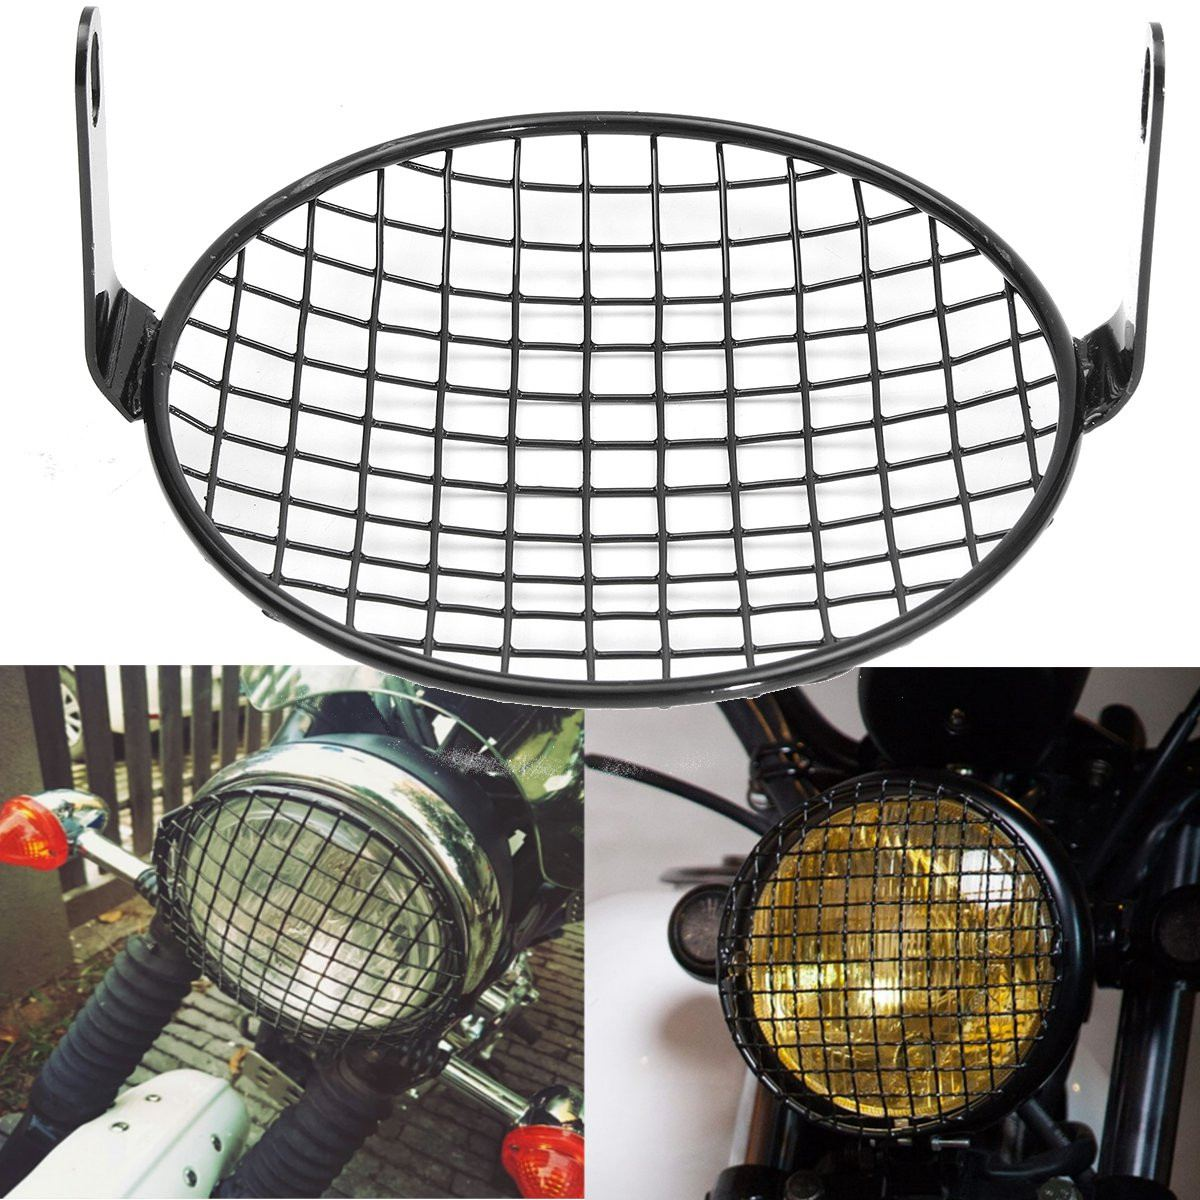 6.4 Inch Front Motorcycle Headlight Mesh Grill Mask Steel Retro Head Lamp Cover Mount Protector Guard For Honda For Bobber CB